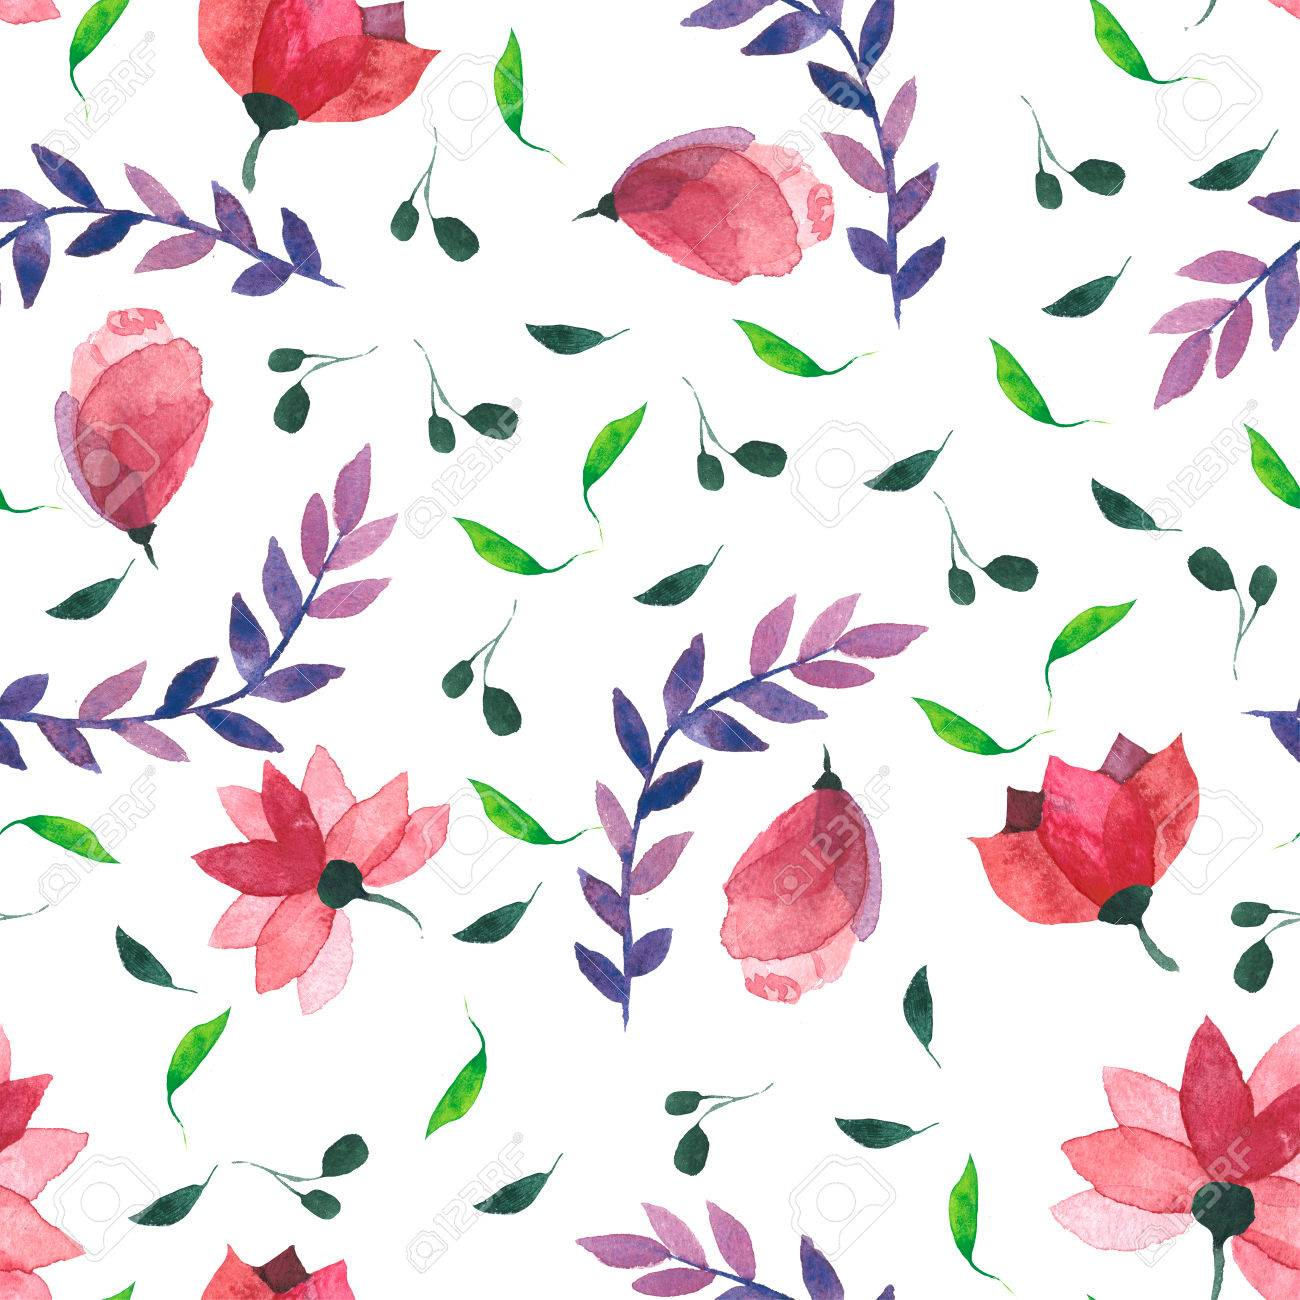 Watercolor Floral Wallpaper Seamless Pattern Or Background Stock